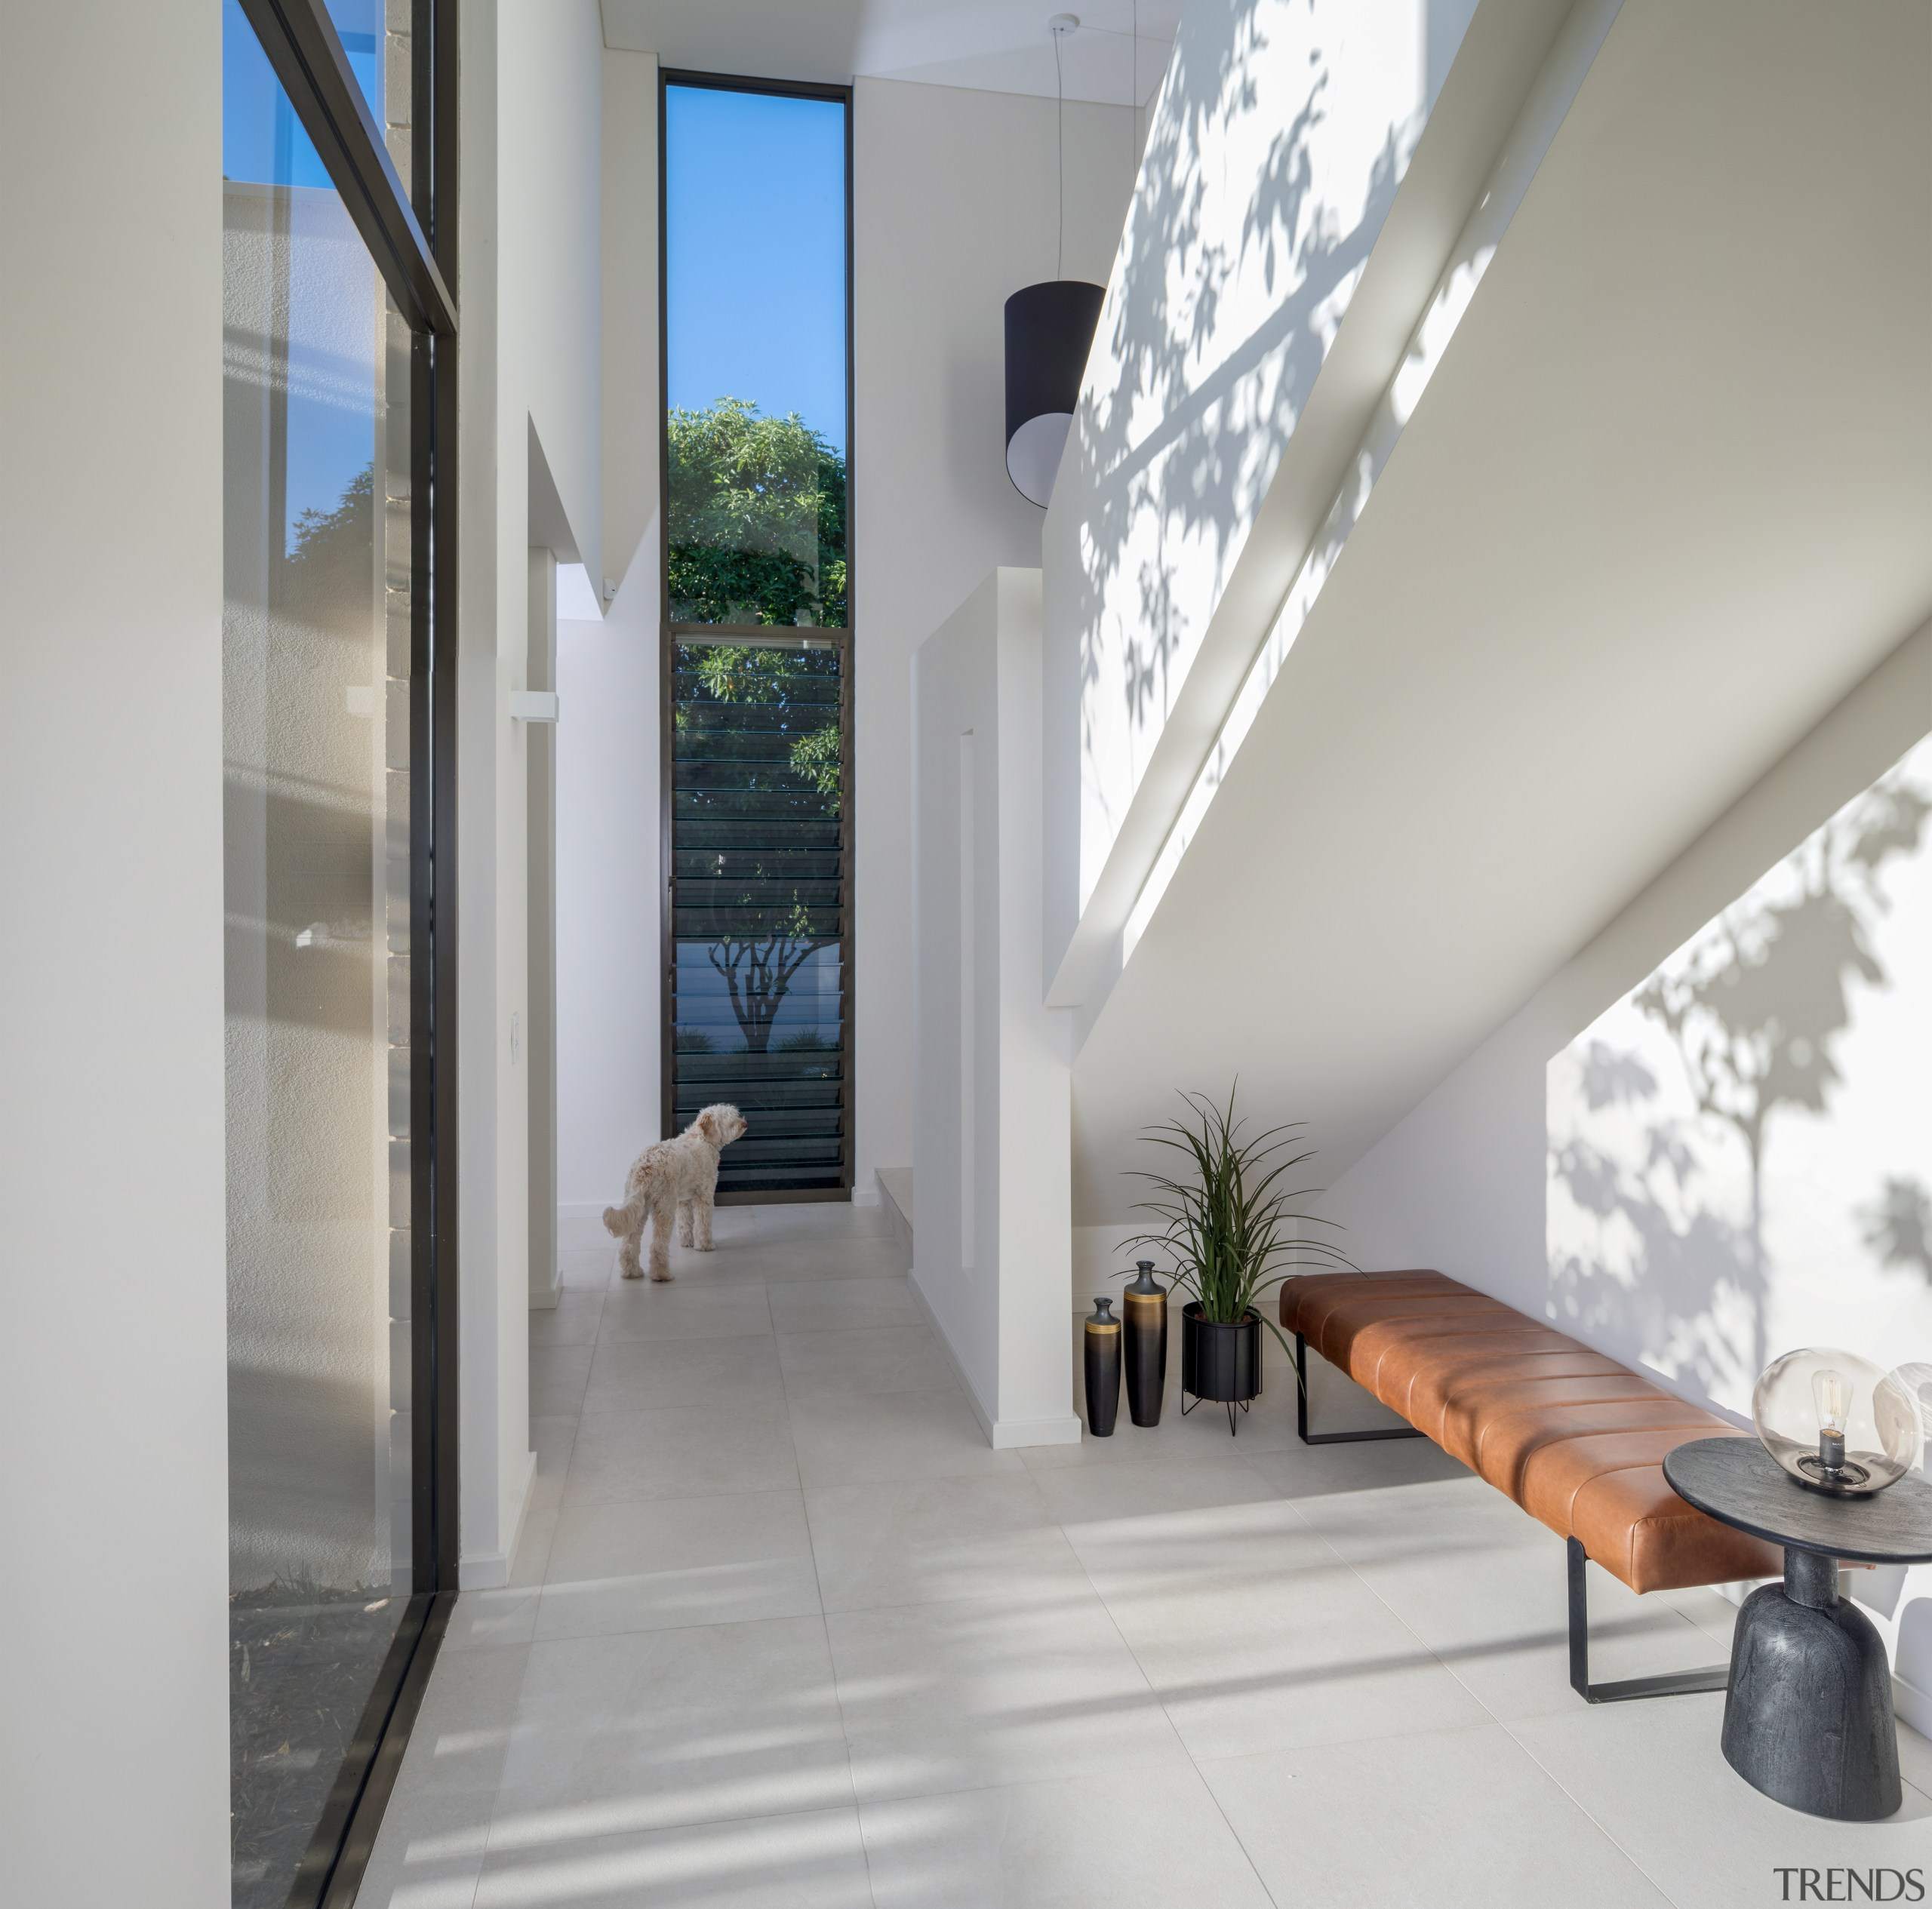 Contemporary, well-connected home opens up to backyard and aluminium, architecture, building, ceiling, daylighting, door, floor, flooring, furniture, glass, hall, home, house, interior design, loft, property, real estate, room, tile, white, window, gray